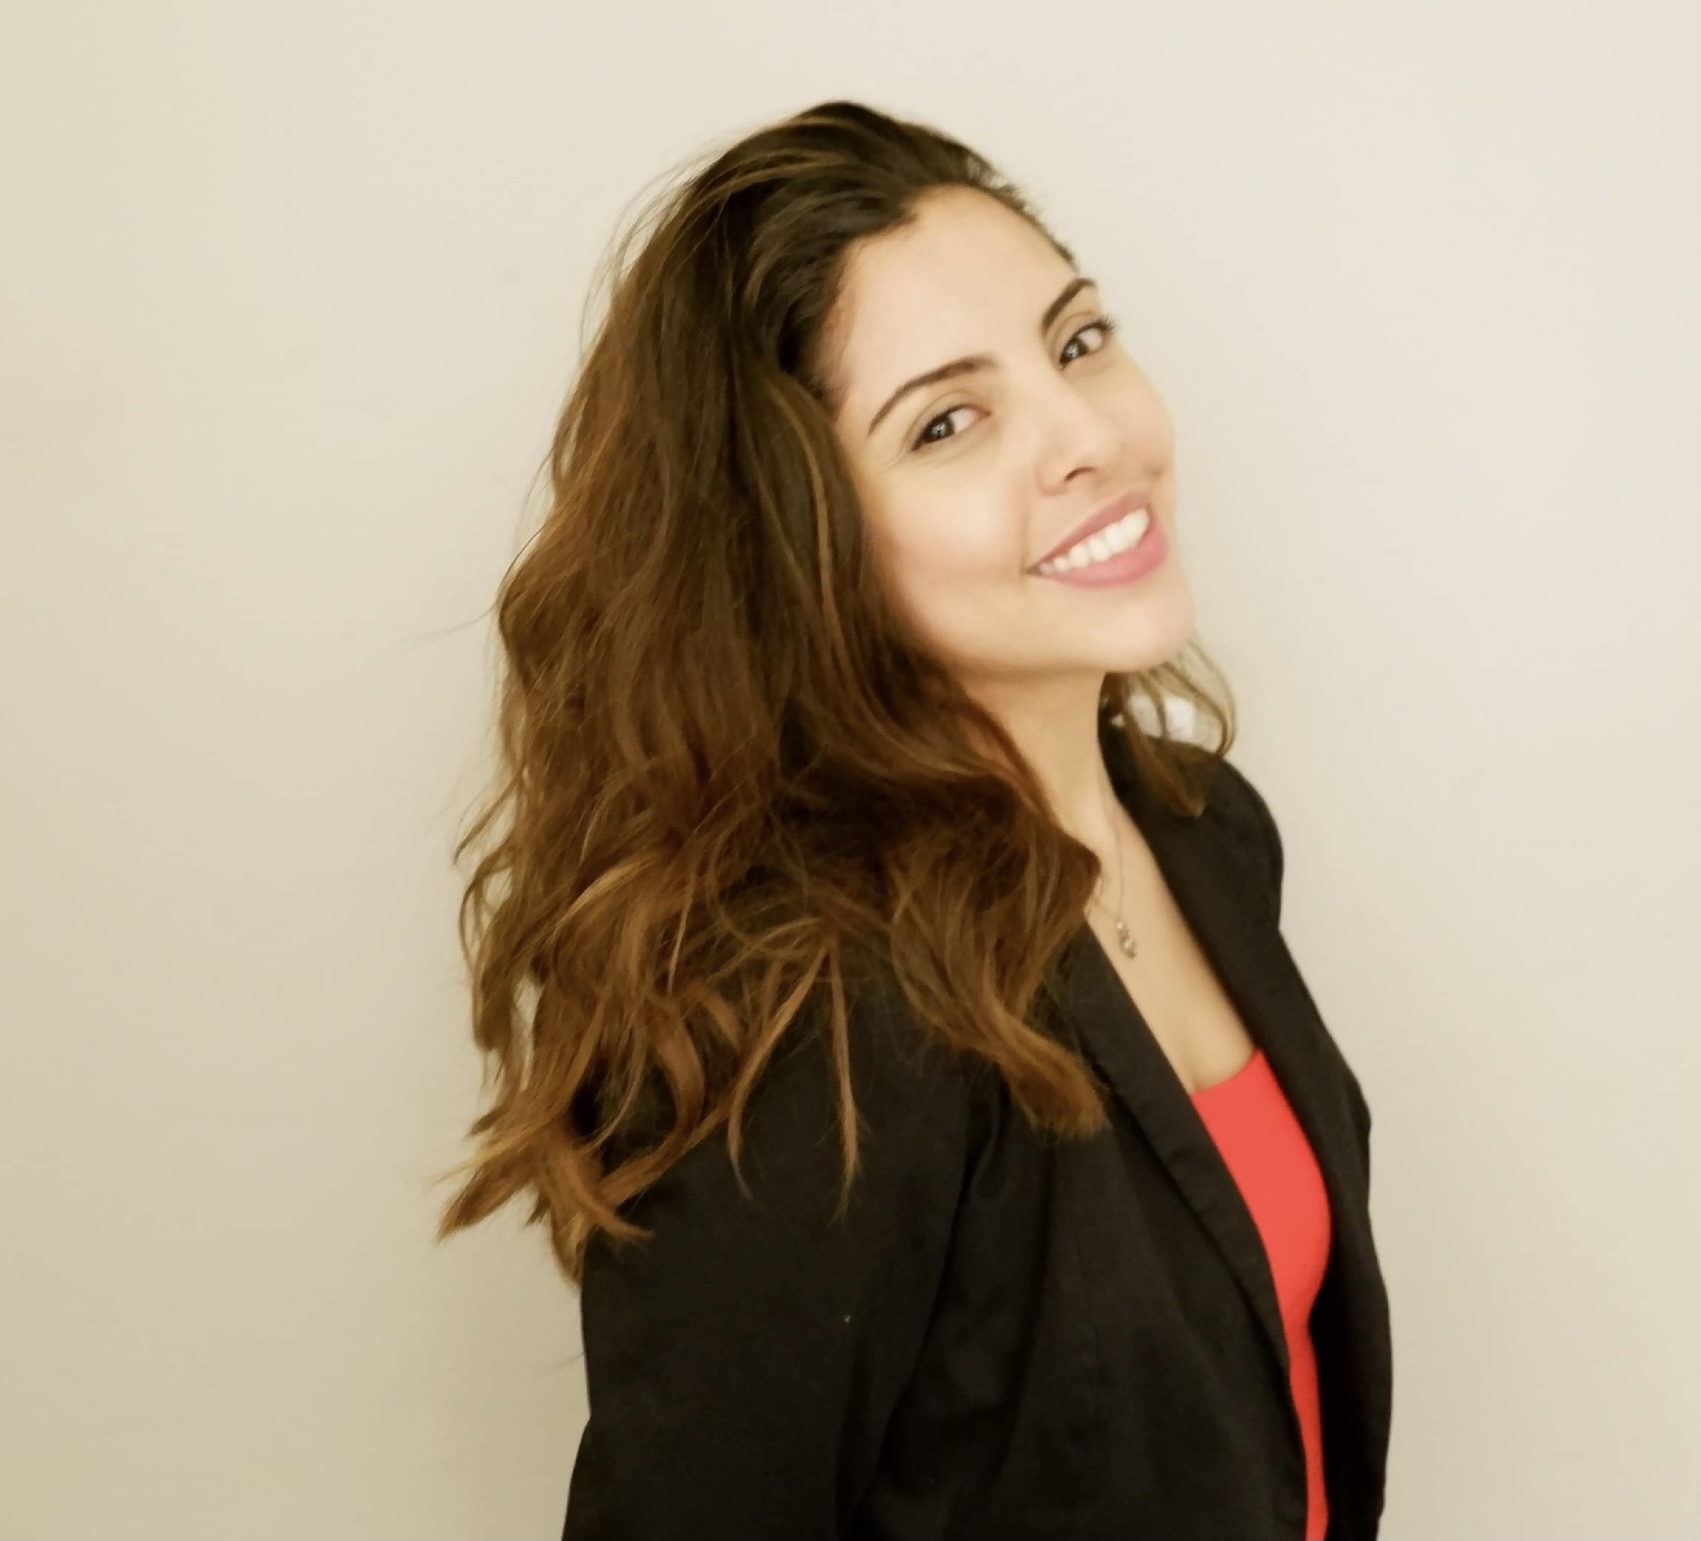 Portrait of Maria, smiling and posing with a black blazer and a red tank top